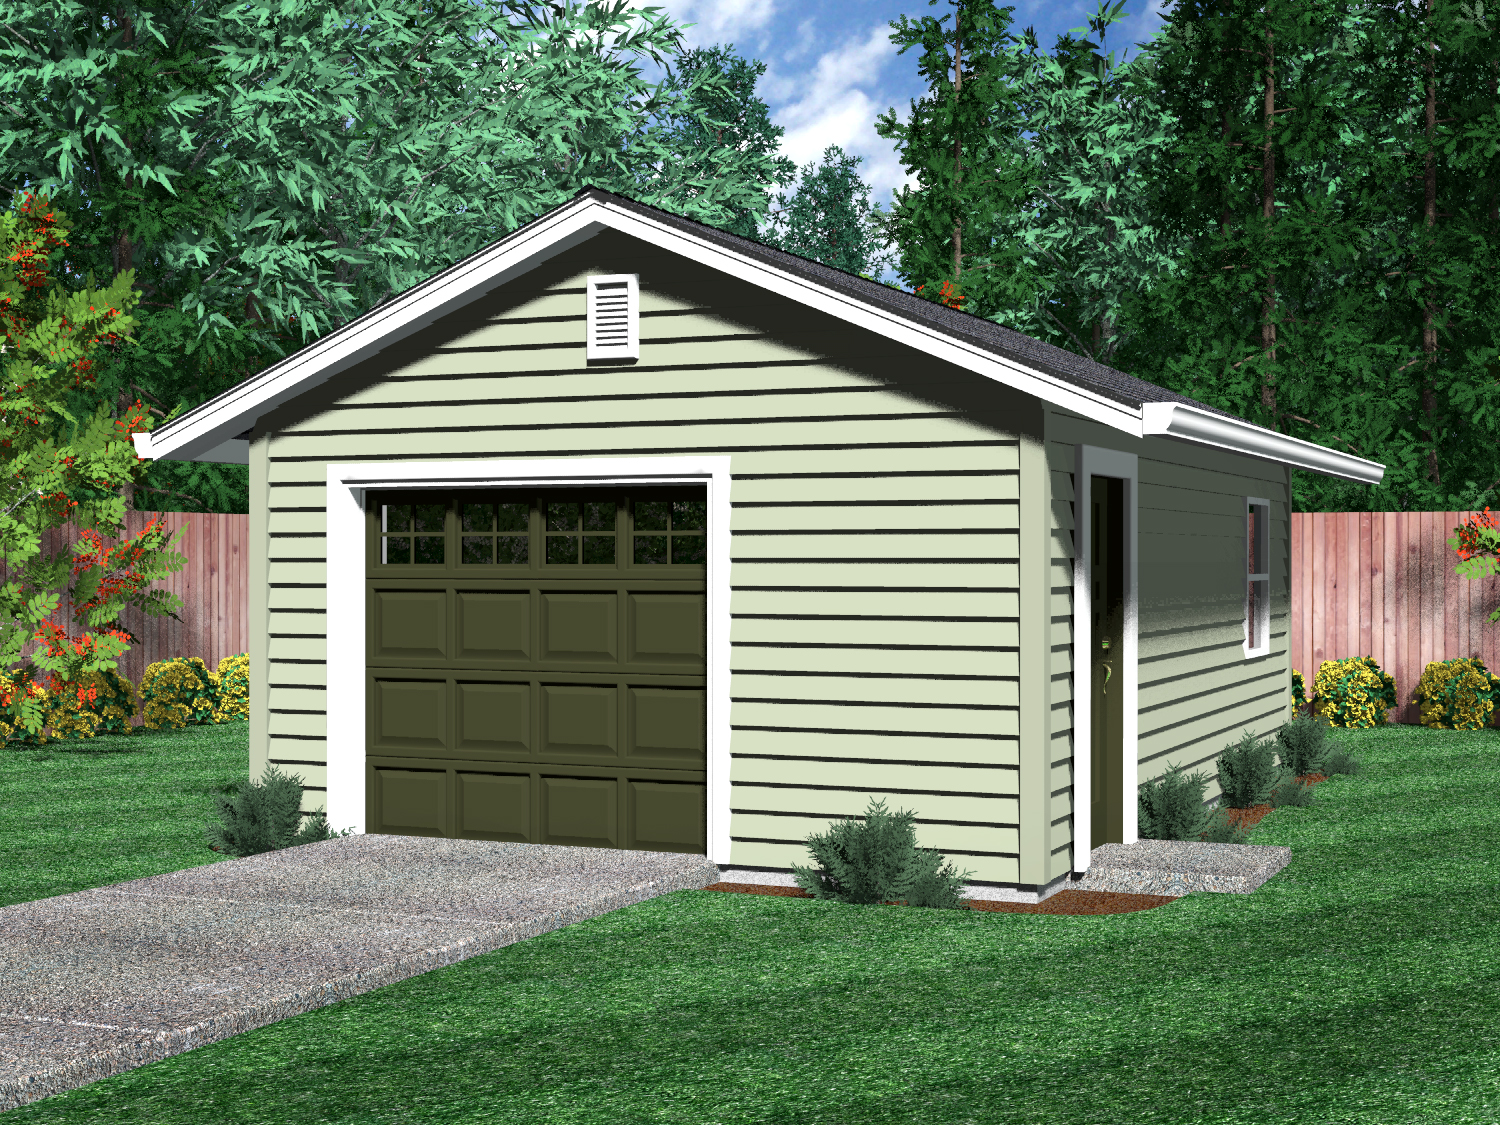 1 1 2 car garage plans home desain 2018 for Garage apartment plans 2 car